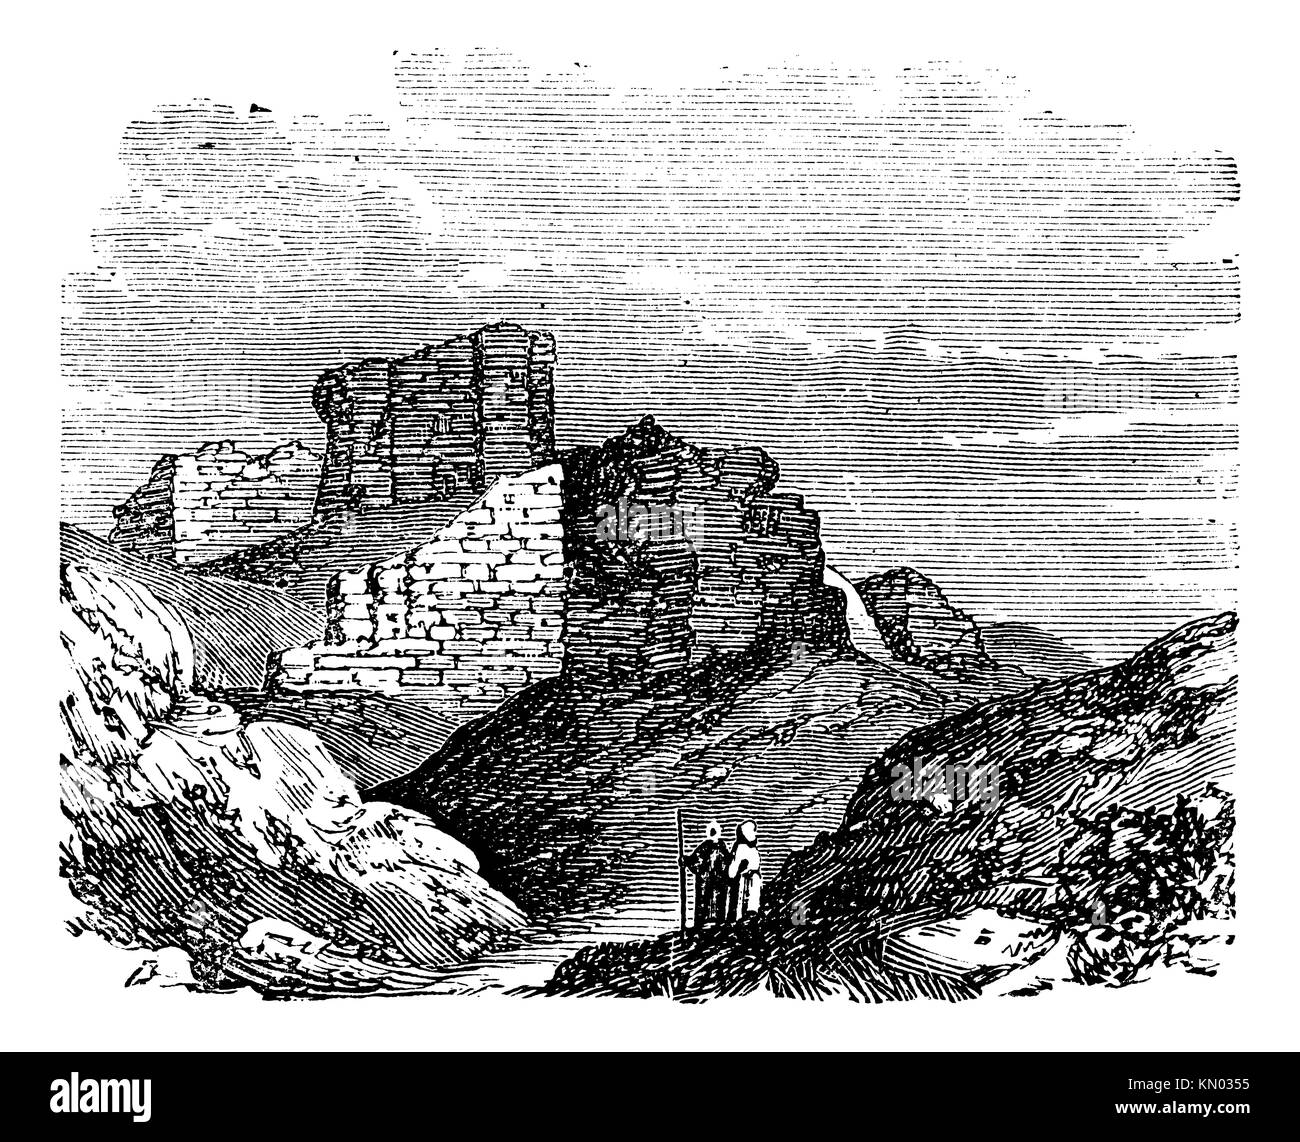 Ruins of the Main Palace in Babylonia in Babil, Iraq, during the 1890s, vintage engraving  Old engraved illustration - Stock Image